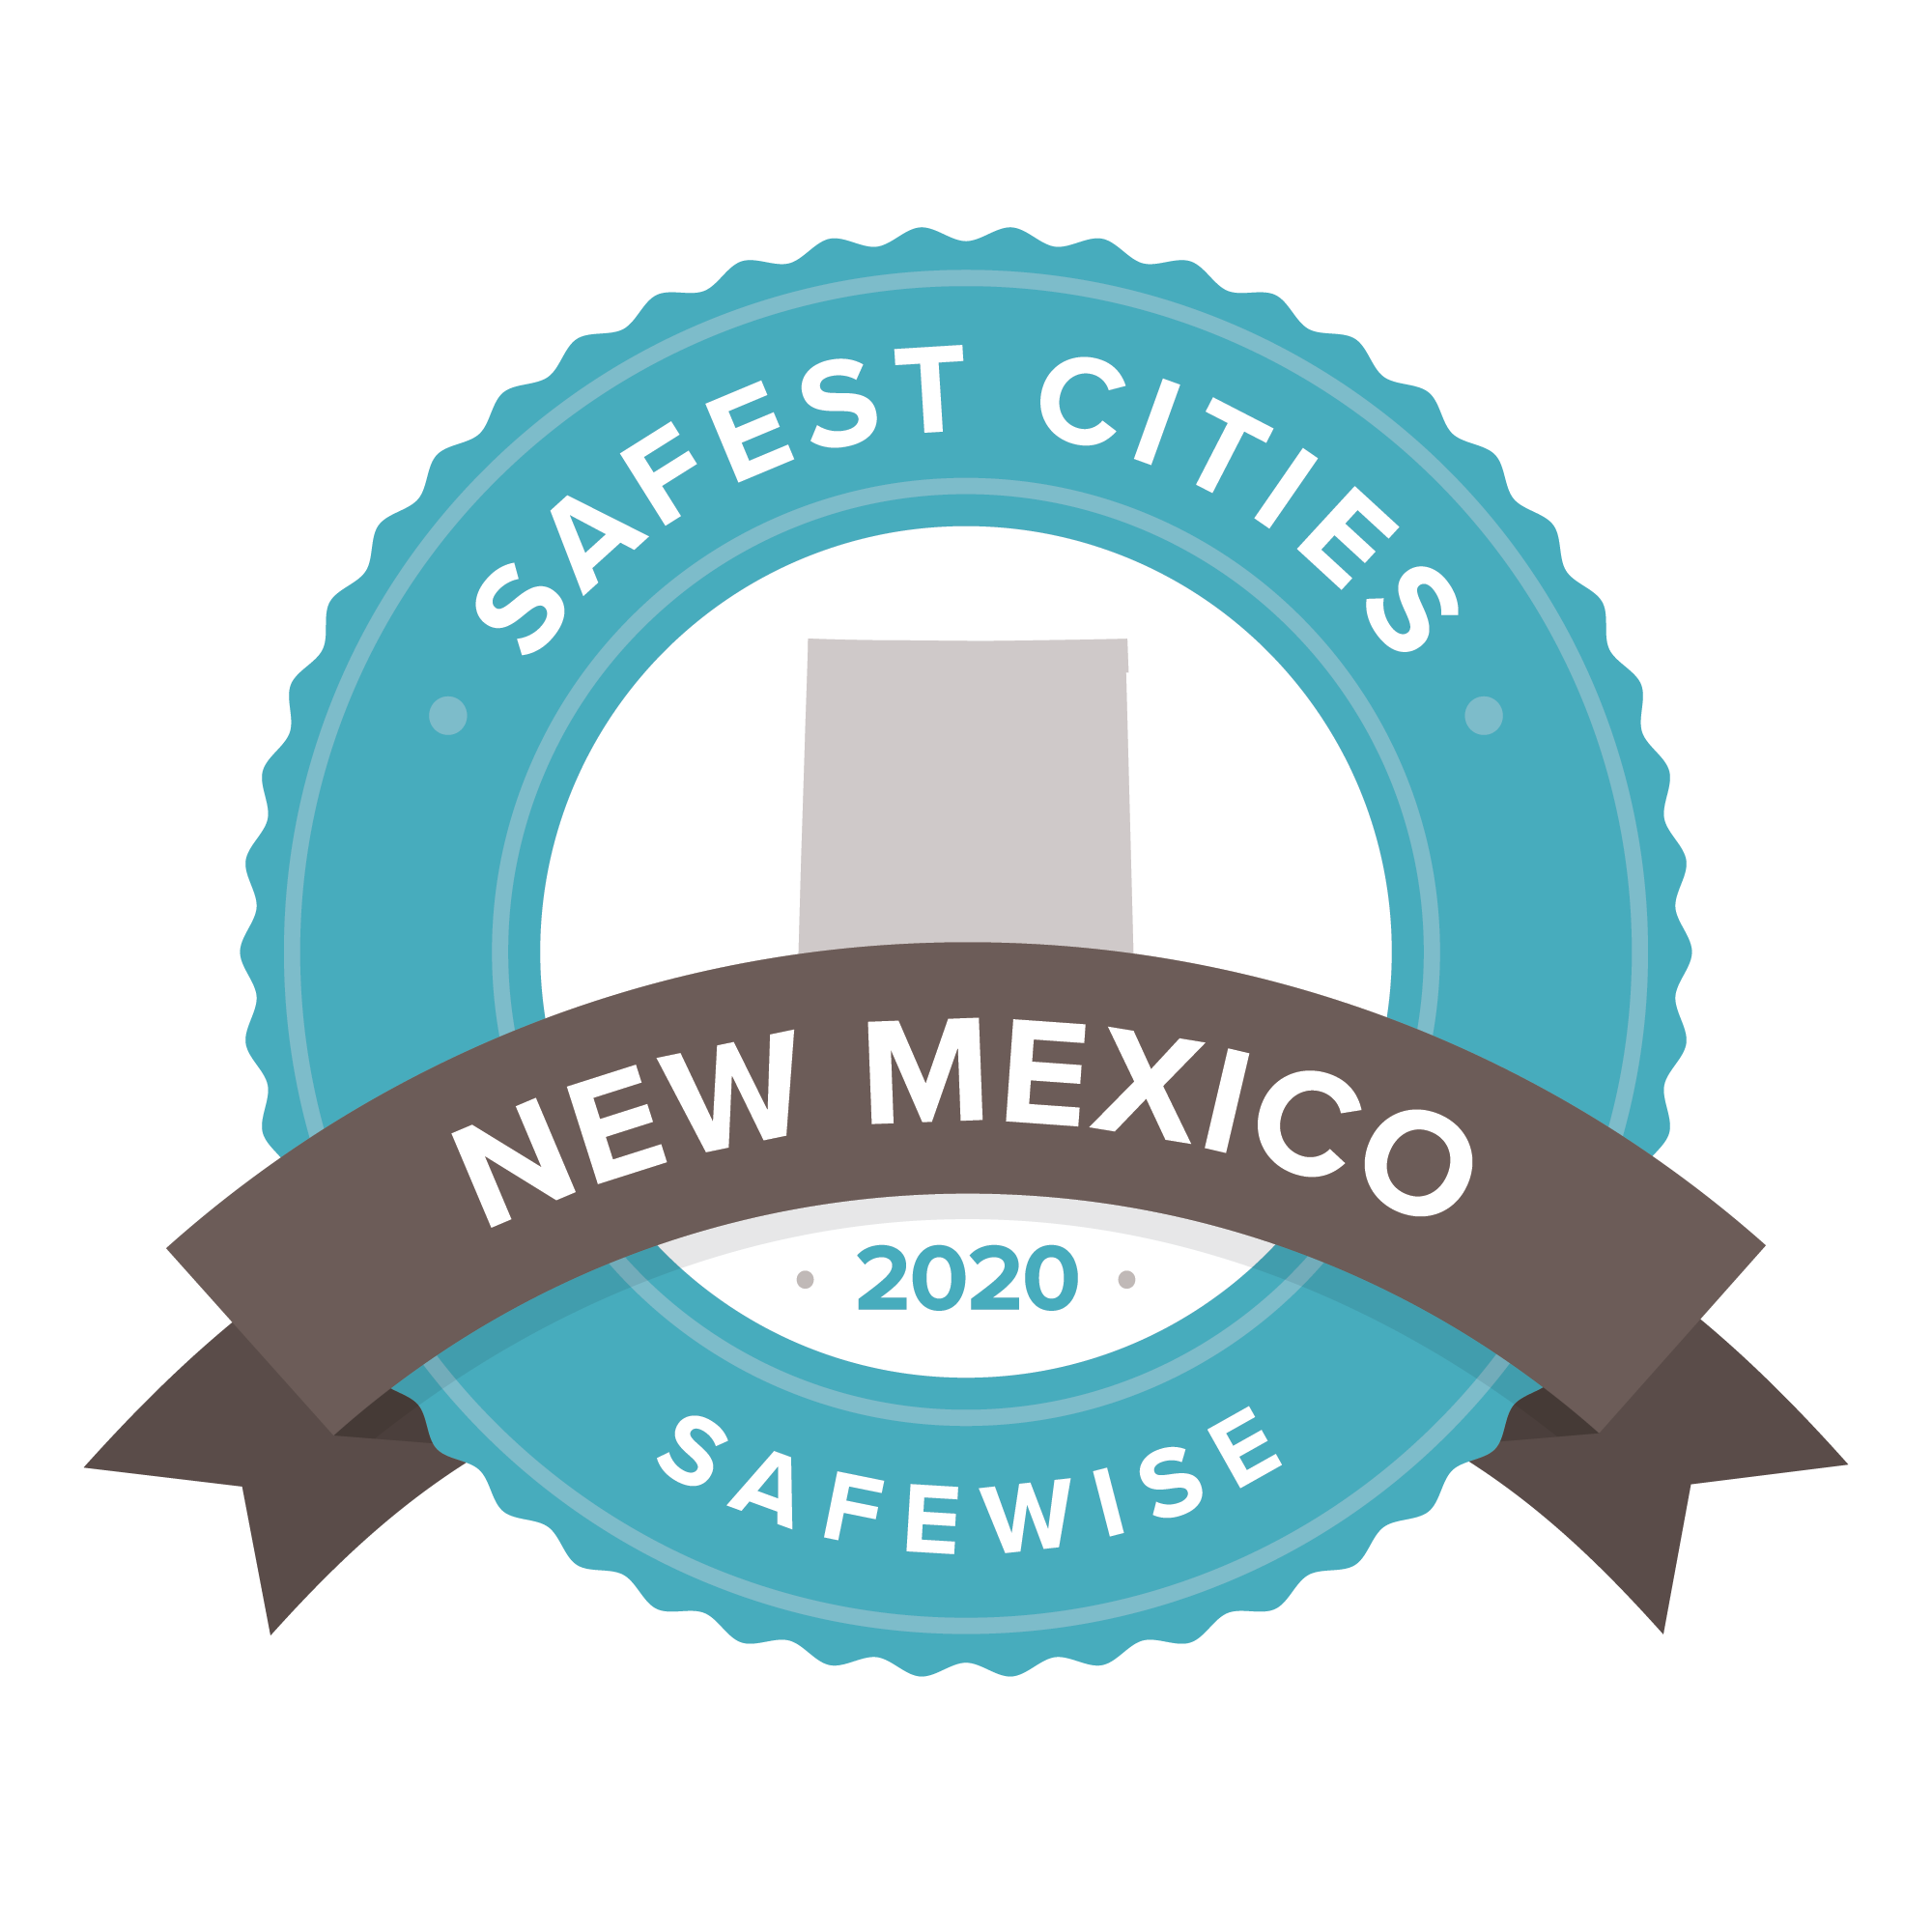 New Mexico badges